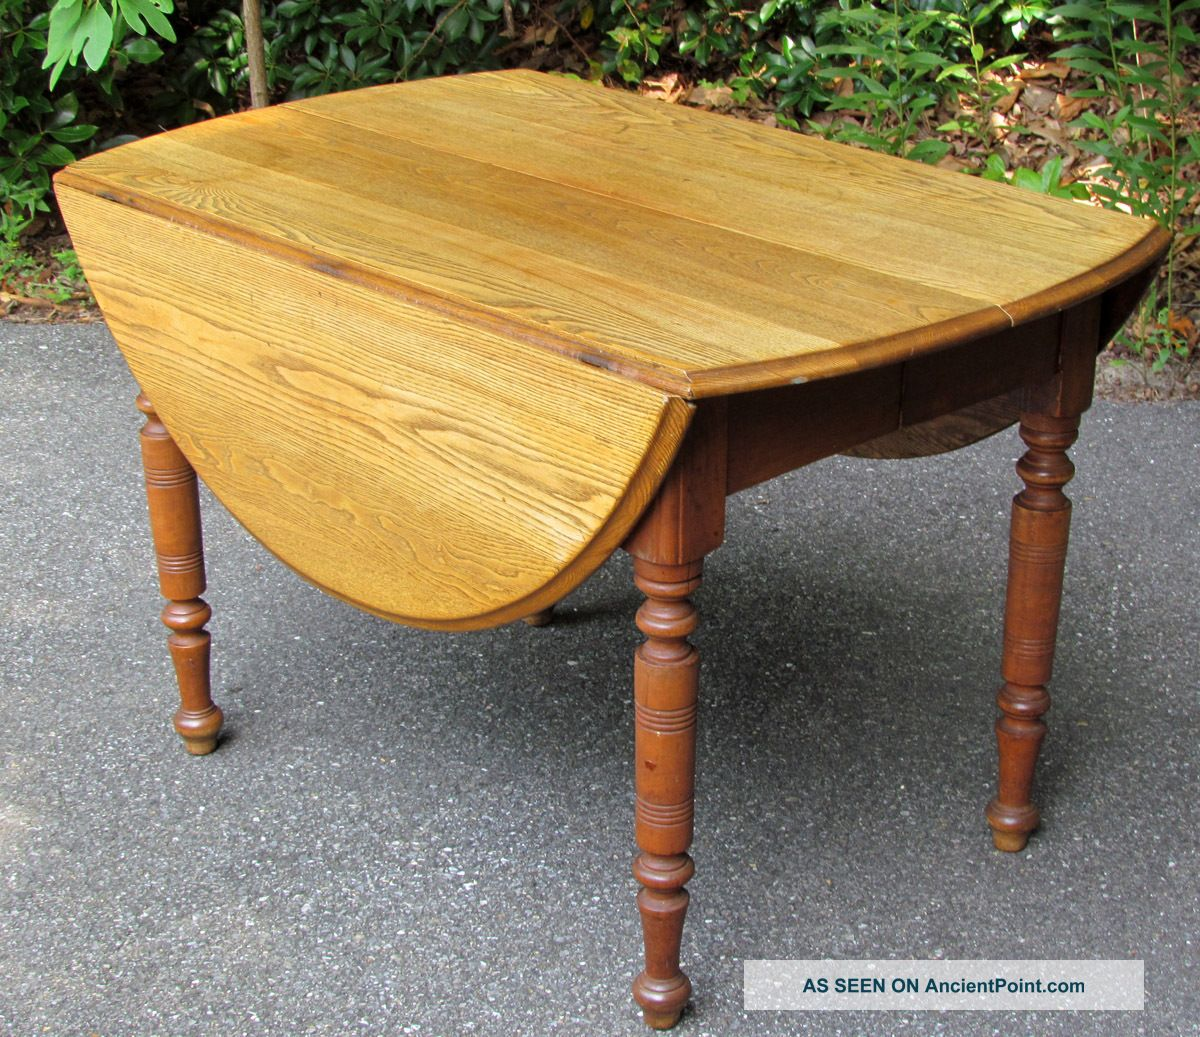 Antique Drop Leaf Oak Top Dining Table 44 X 54 1890 1910 Exte